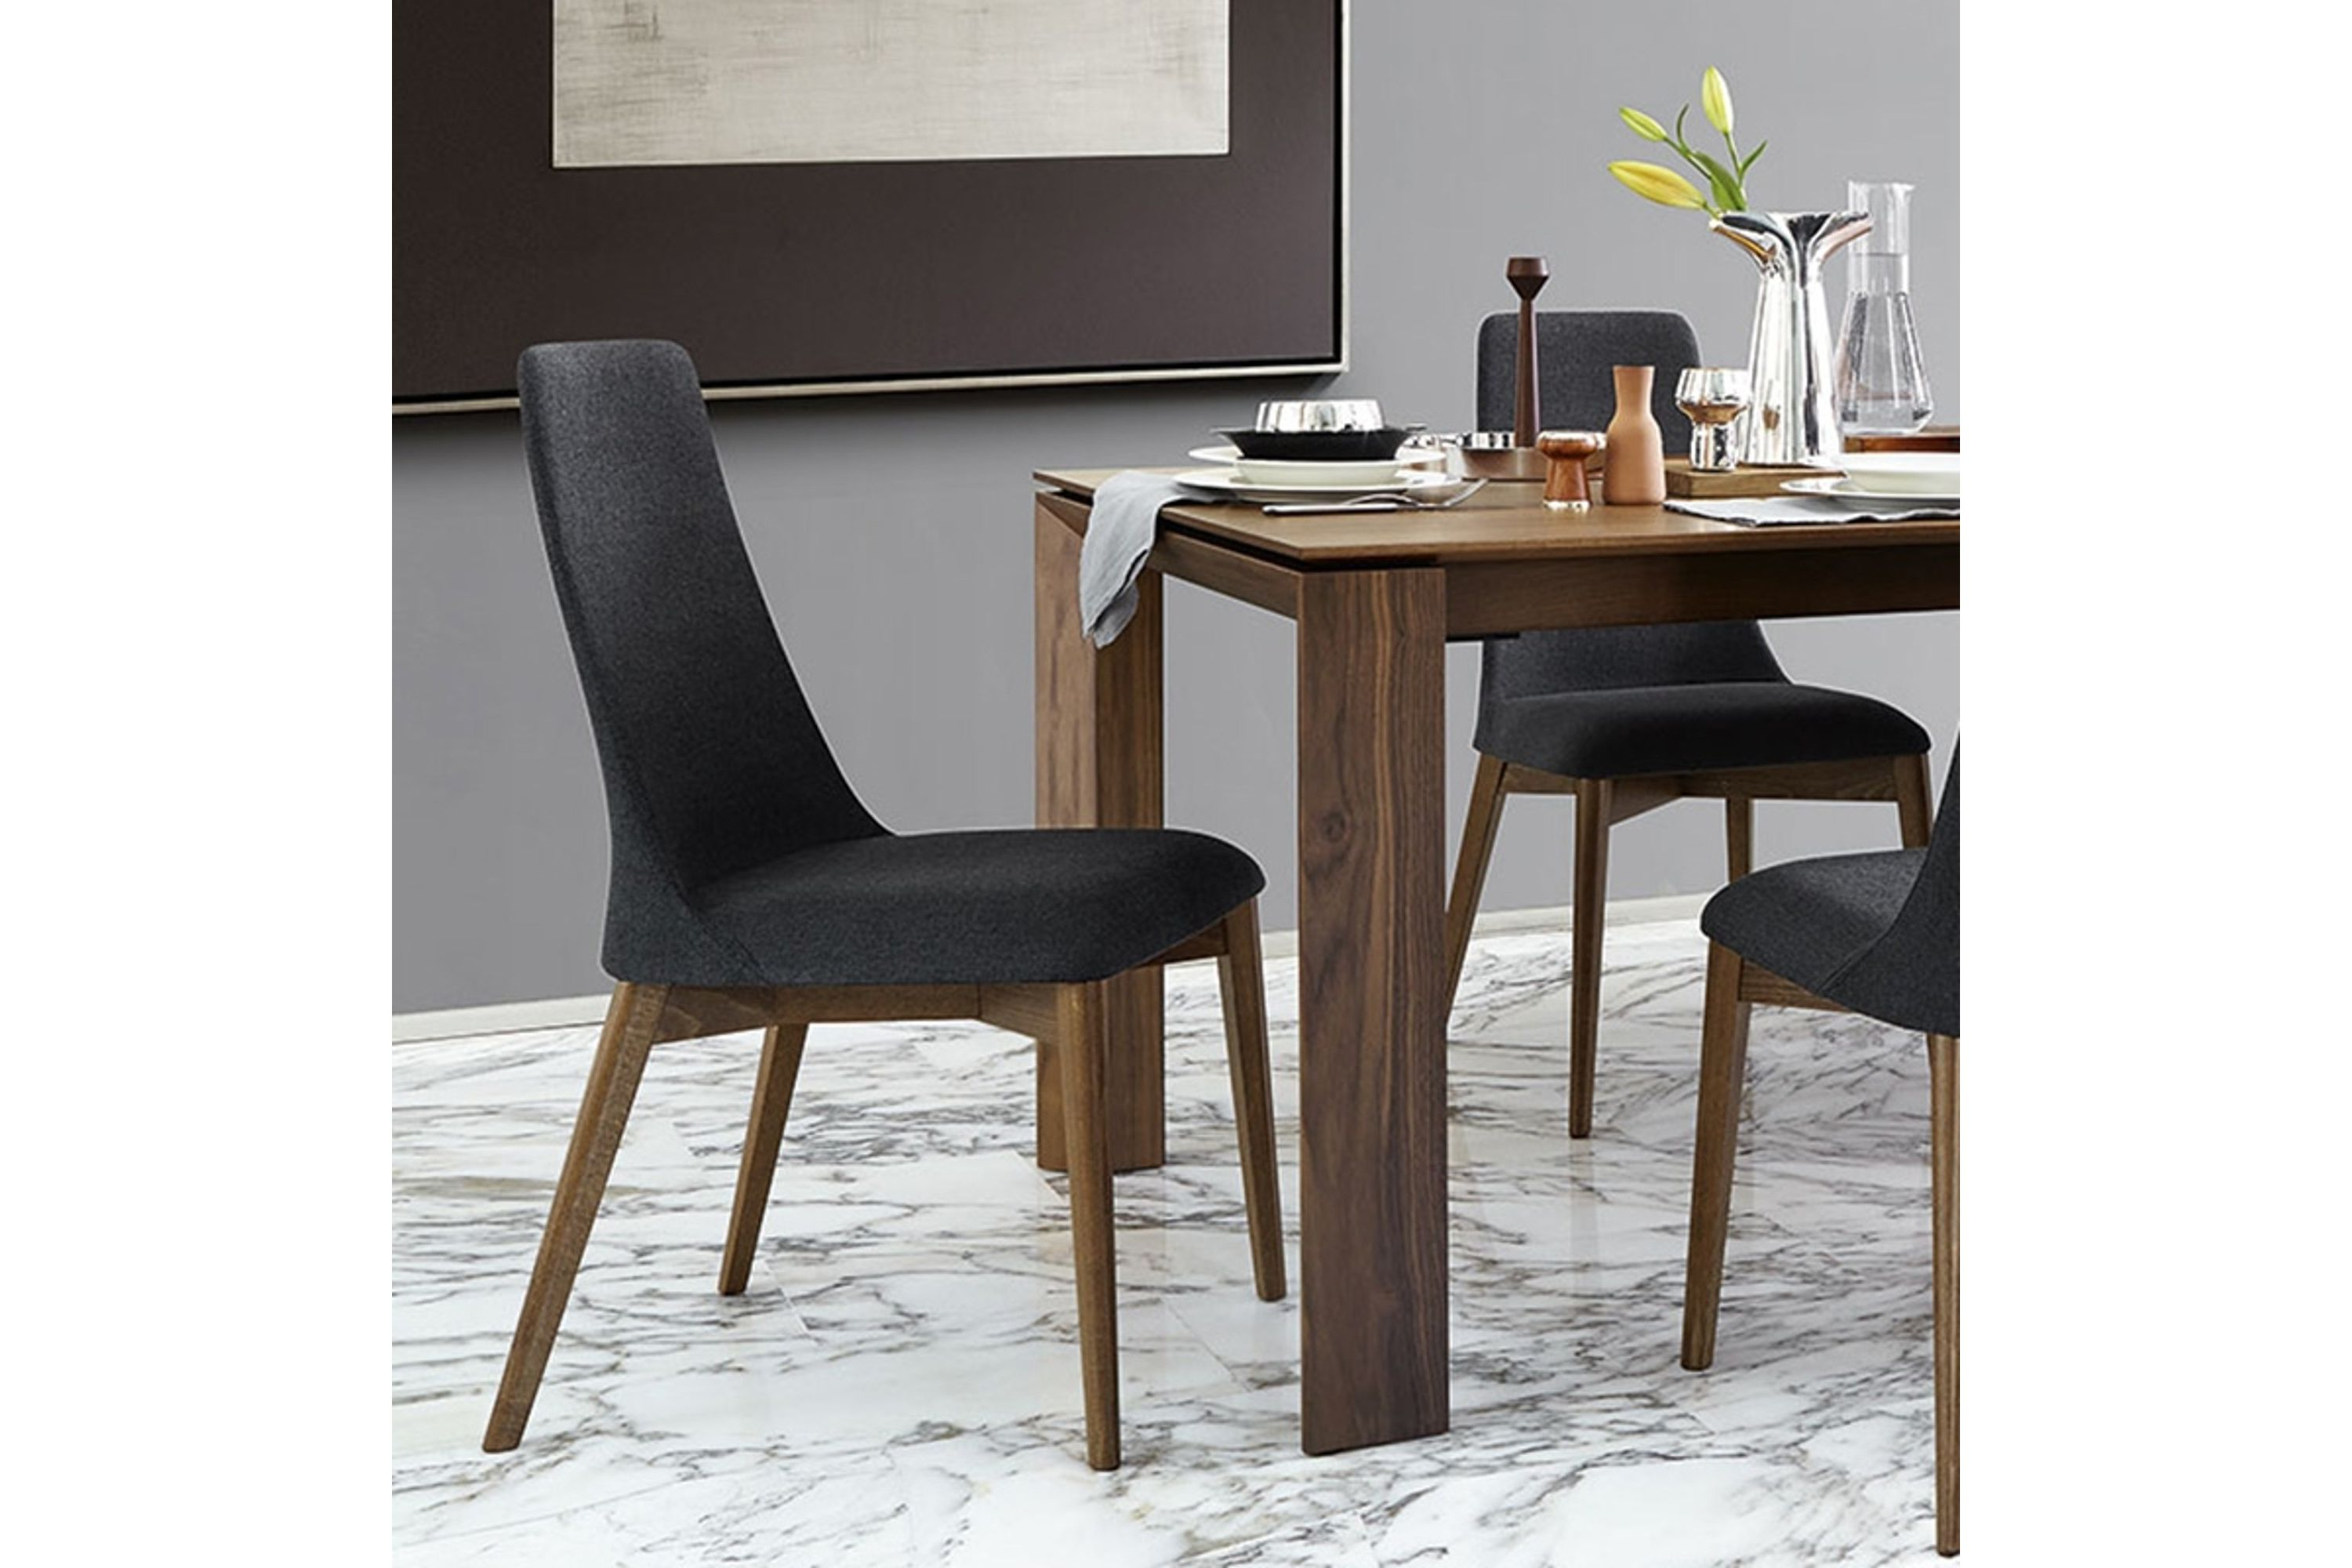 Dining Chairs Furniture Etoile Chair Wood Buy Dining Chairs And More From Furniture Store Voyager Melbourne Richmond Ballarat